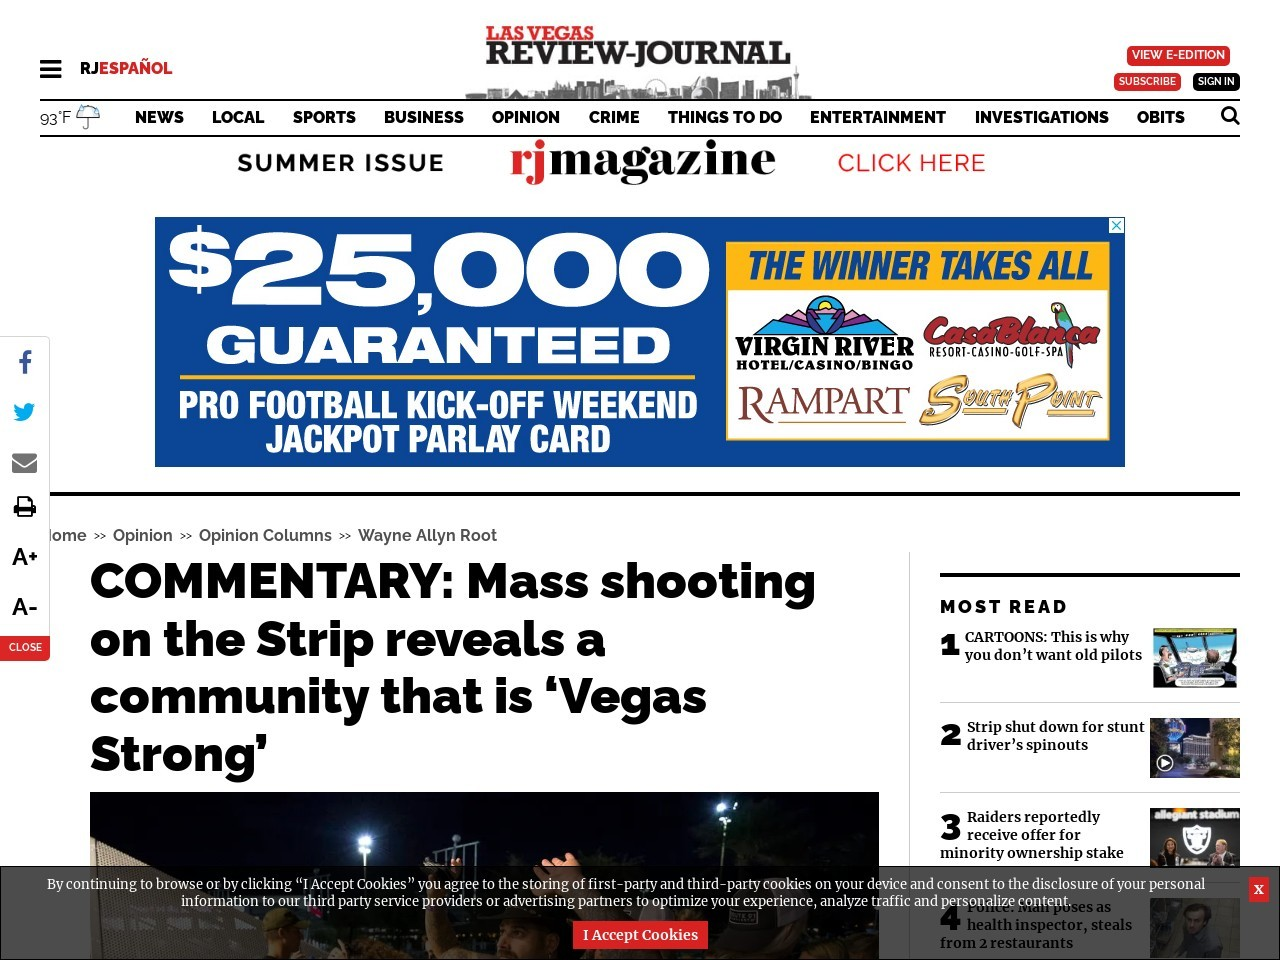 COMMENTARY: Mass shooting on the Strip reveals a community that is 'Vegas Strong'